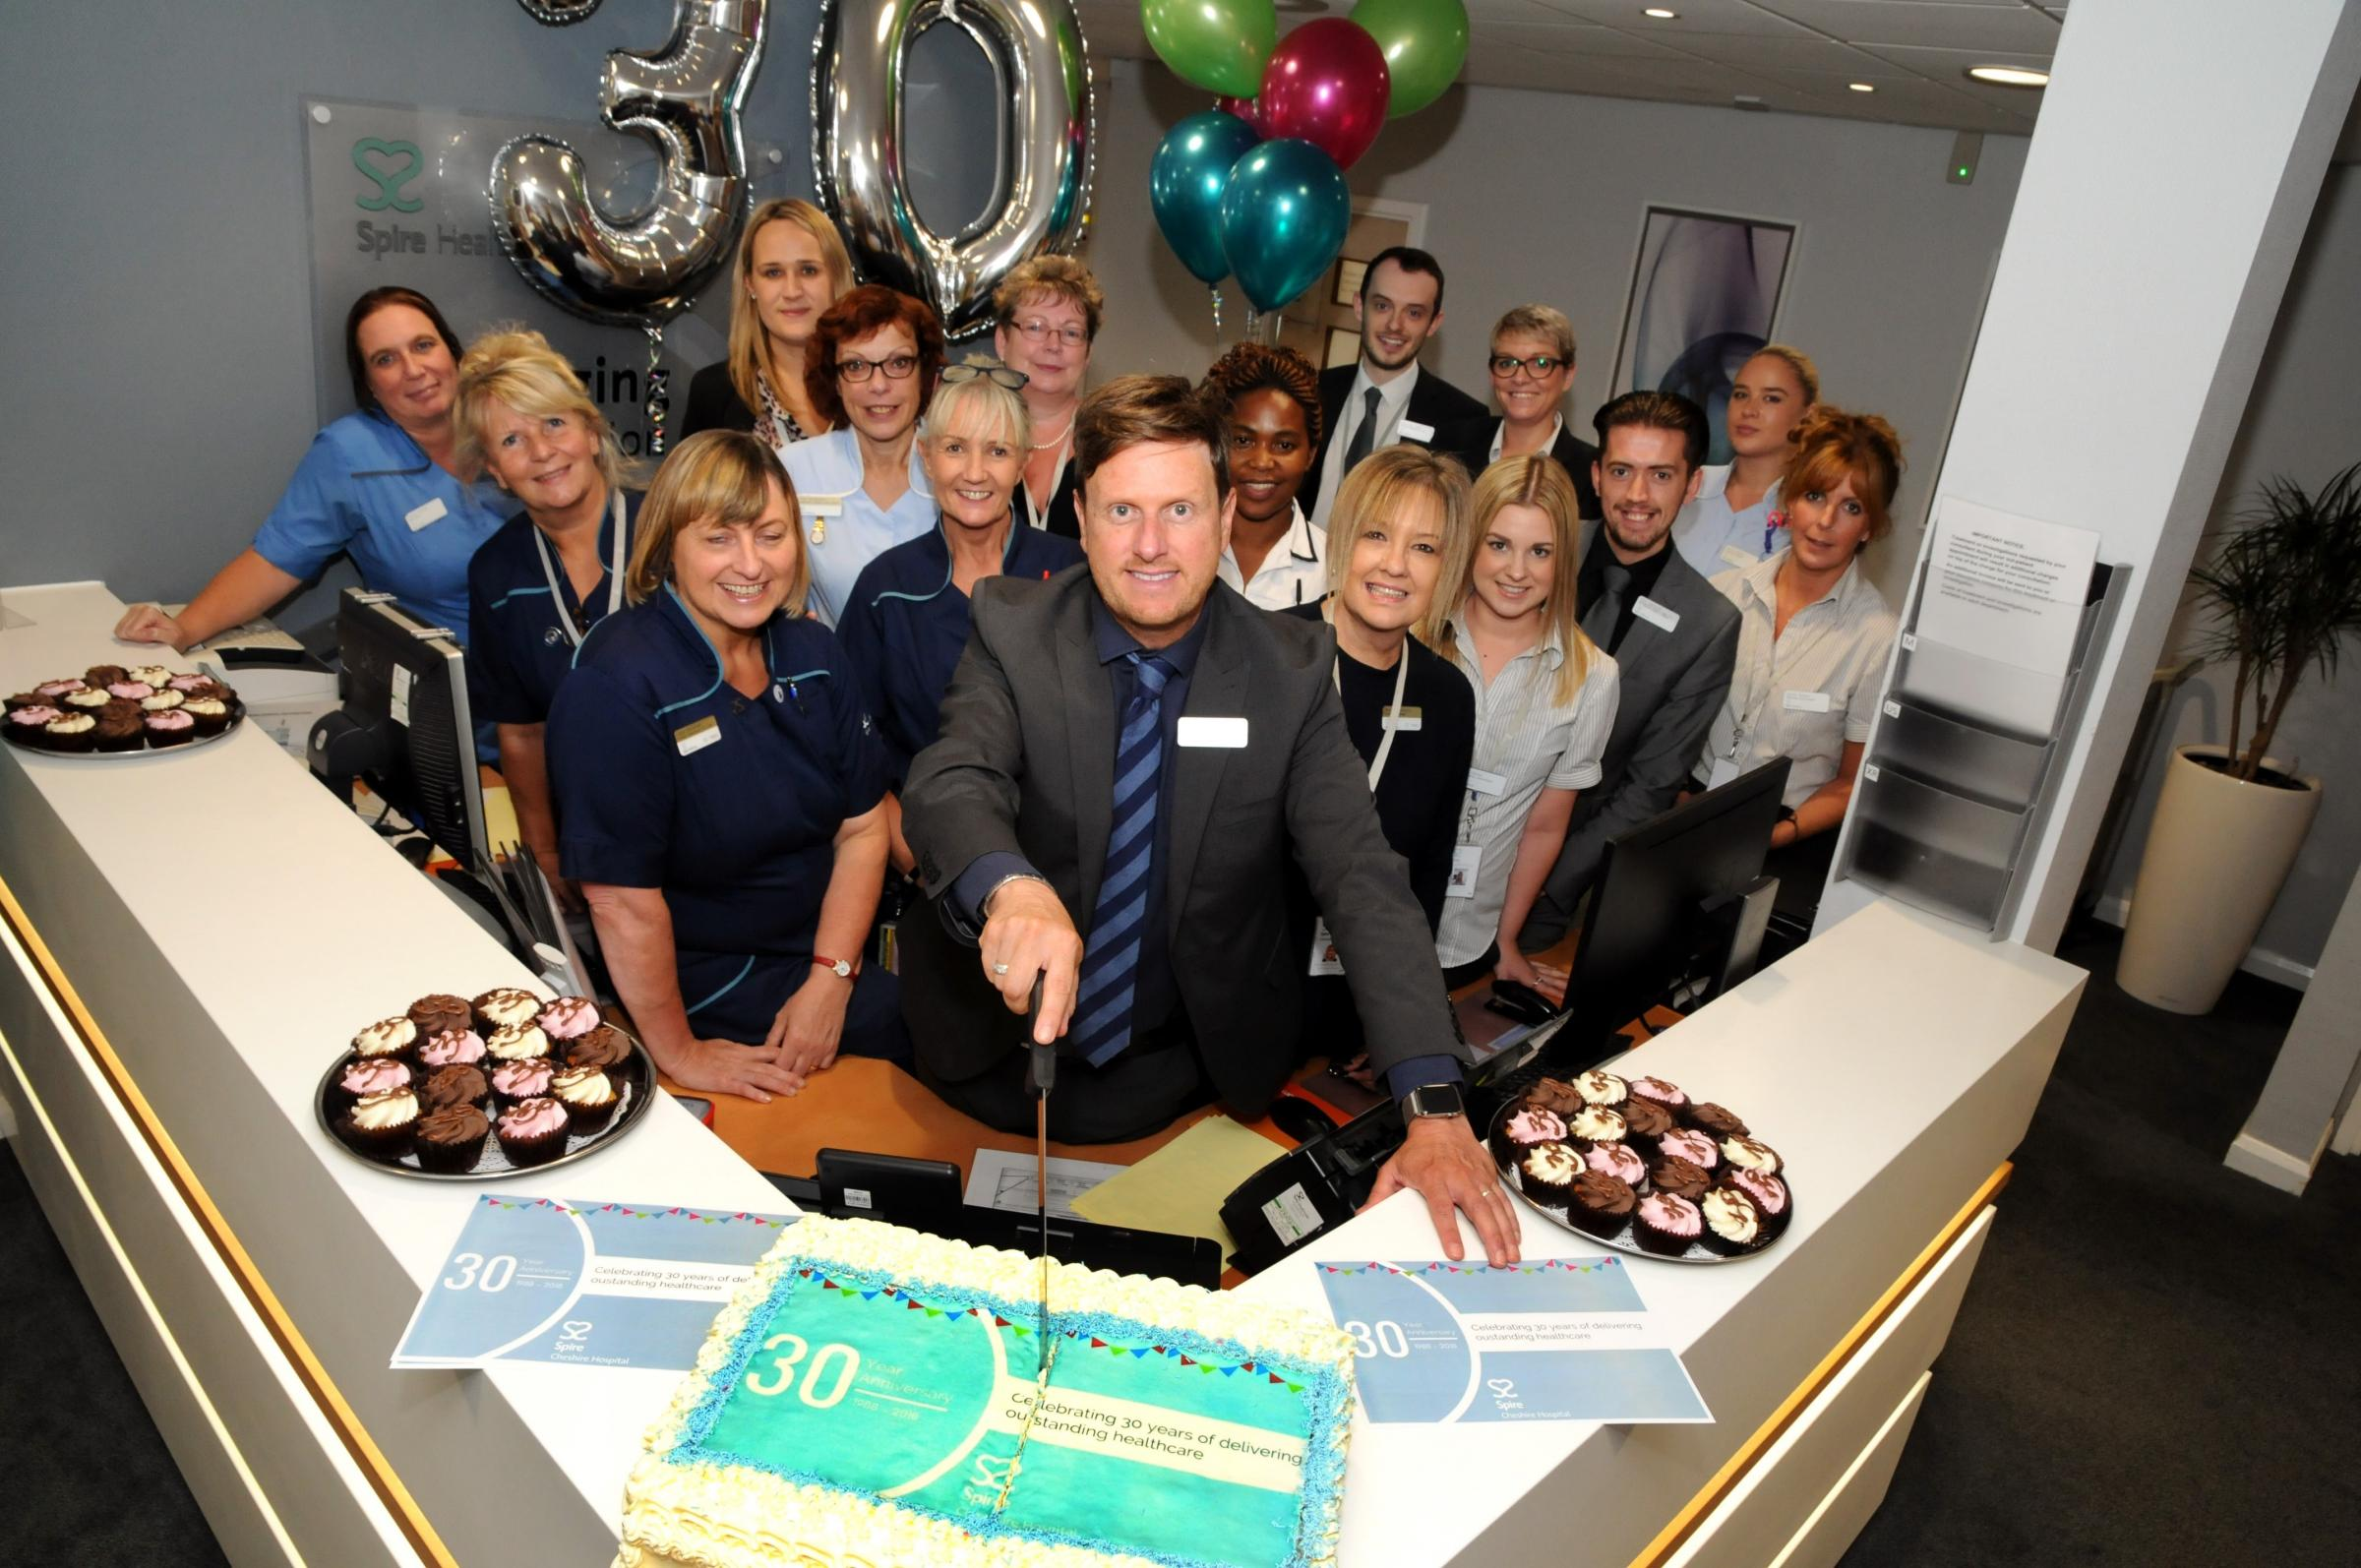 Director Andrew Johnson cuts the cake to celebrate Spire Cheshire Hospital's 30th birthday.